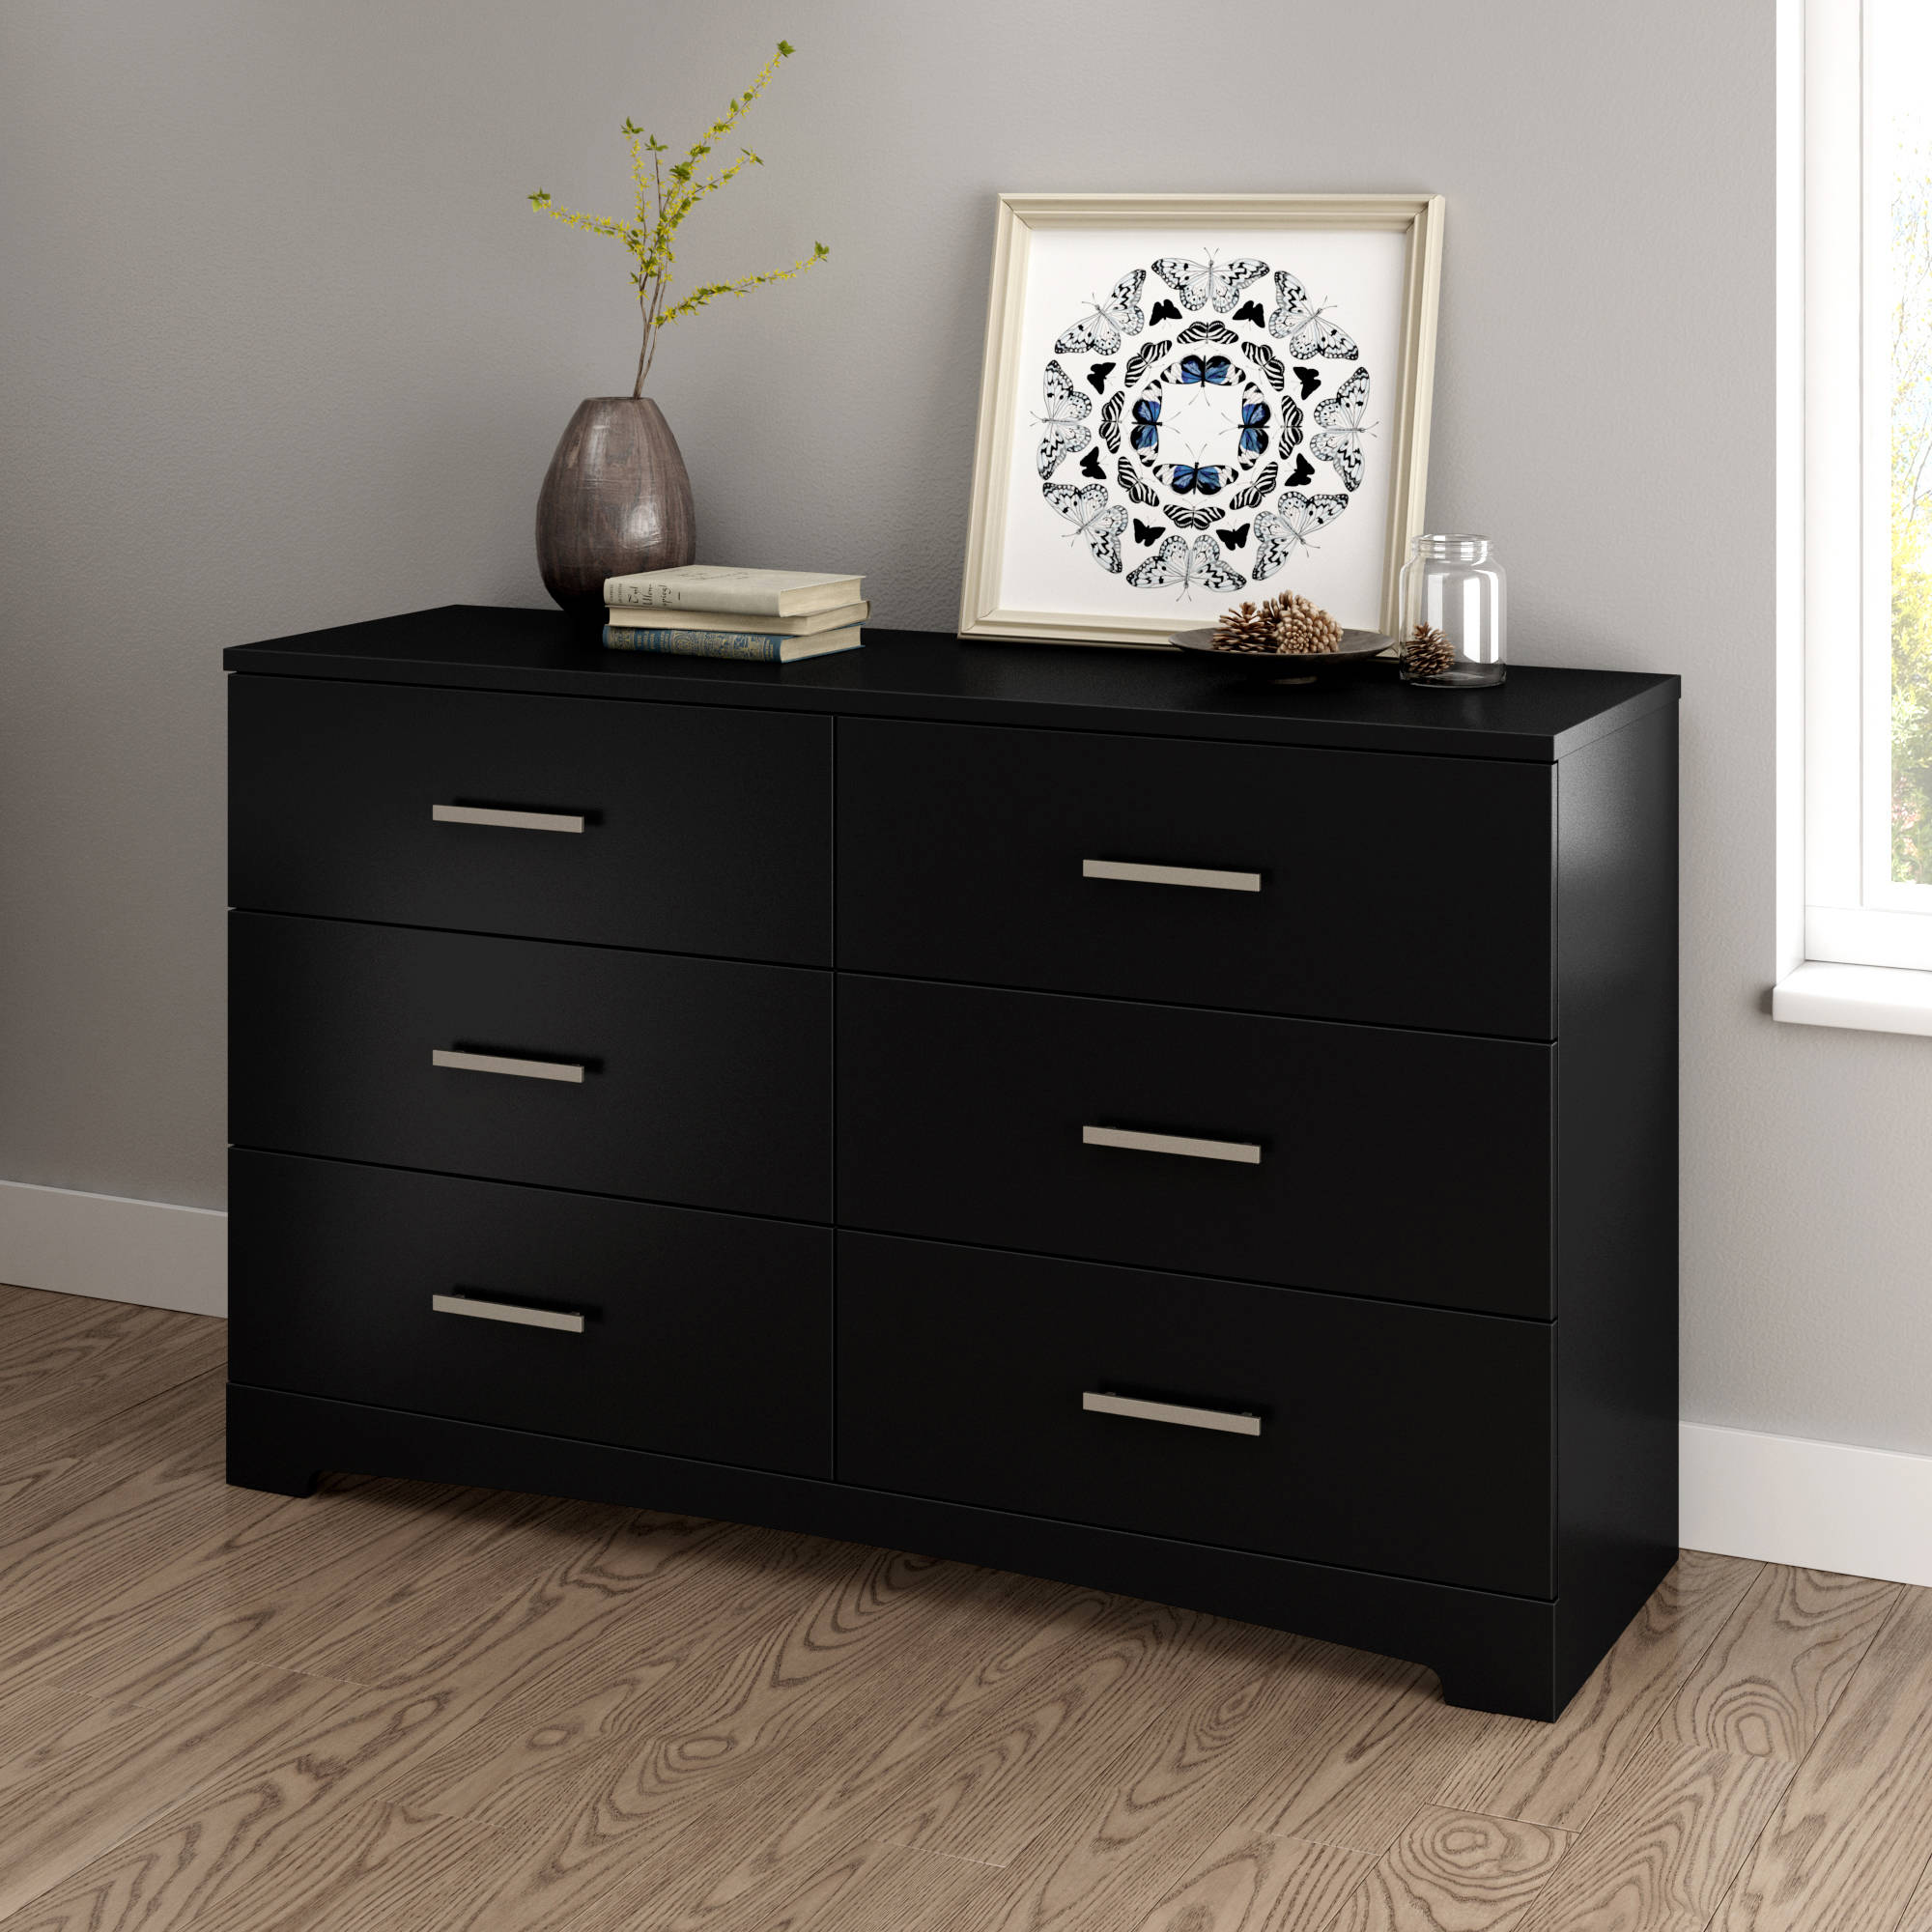 South Sgramercy 6 Drawer Double Dresser Multiple Finishes Walmart Com